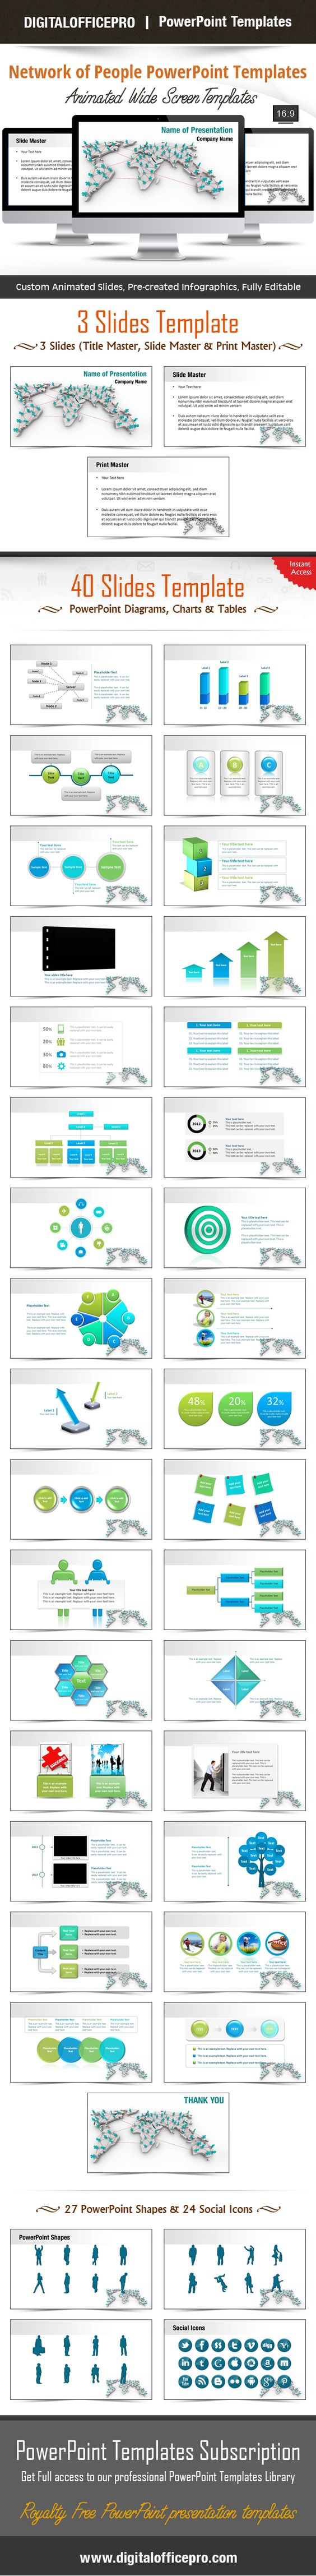 Impress and Engage your audience with Earth Globe PowerPoint Template and Earth Globe PowerPoint Backgrounds from DigitalOfficePro. Each template comes with a set of PowerPoint Diagrams, Charts & Shapes and are available for instant download.